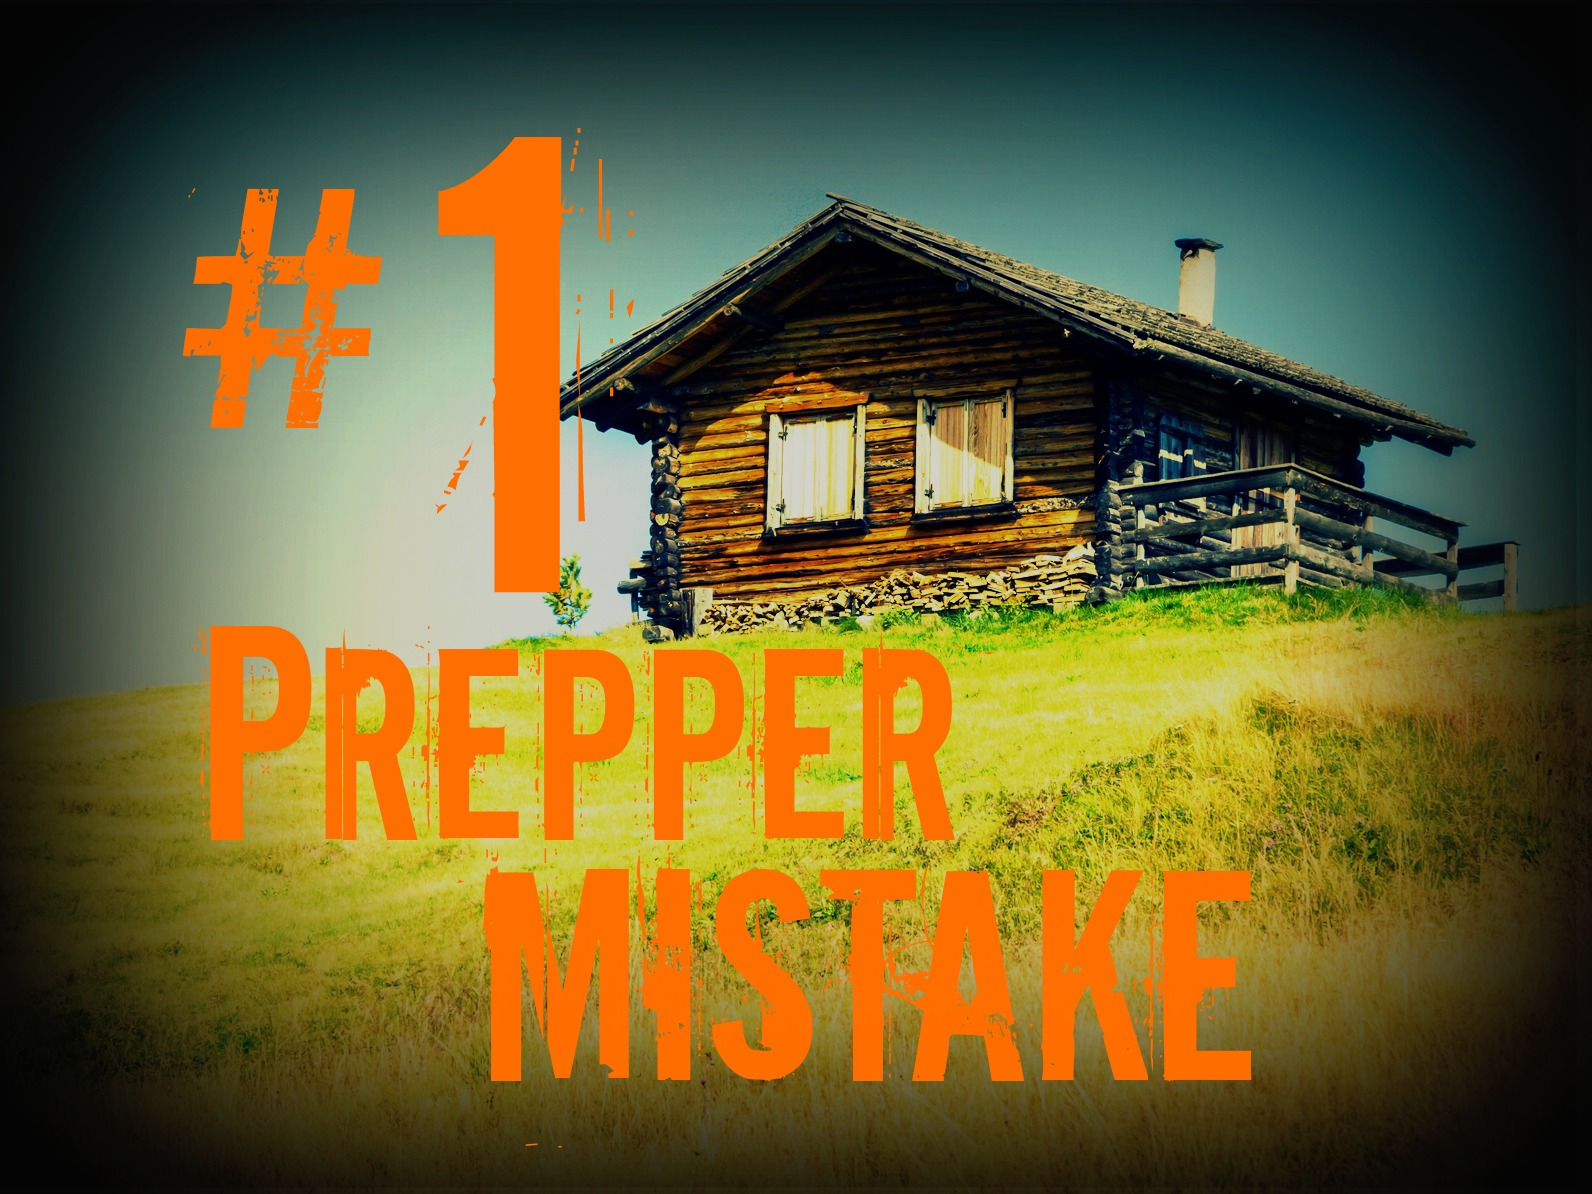 The BIGGEST Mistake Preppers Make